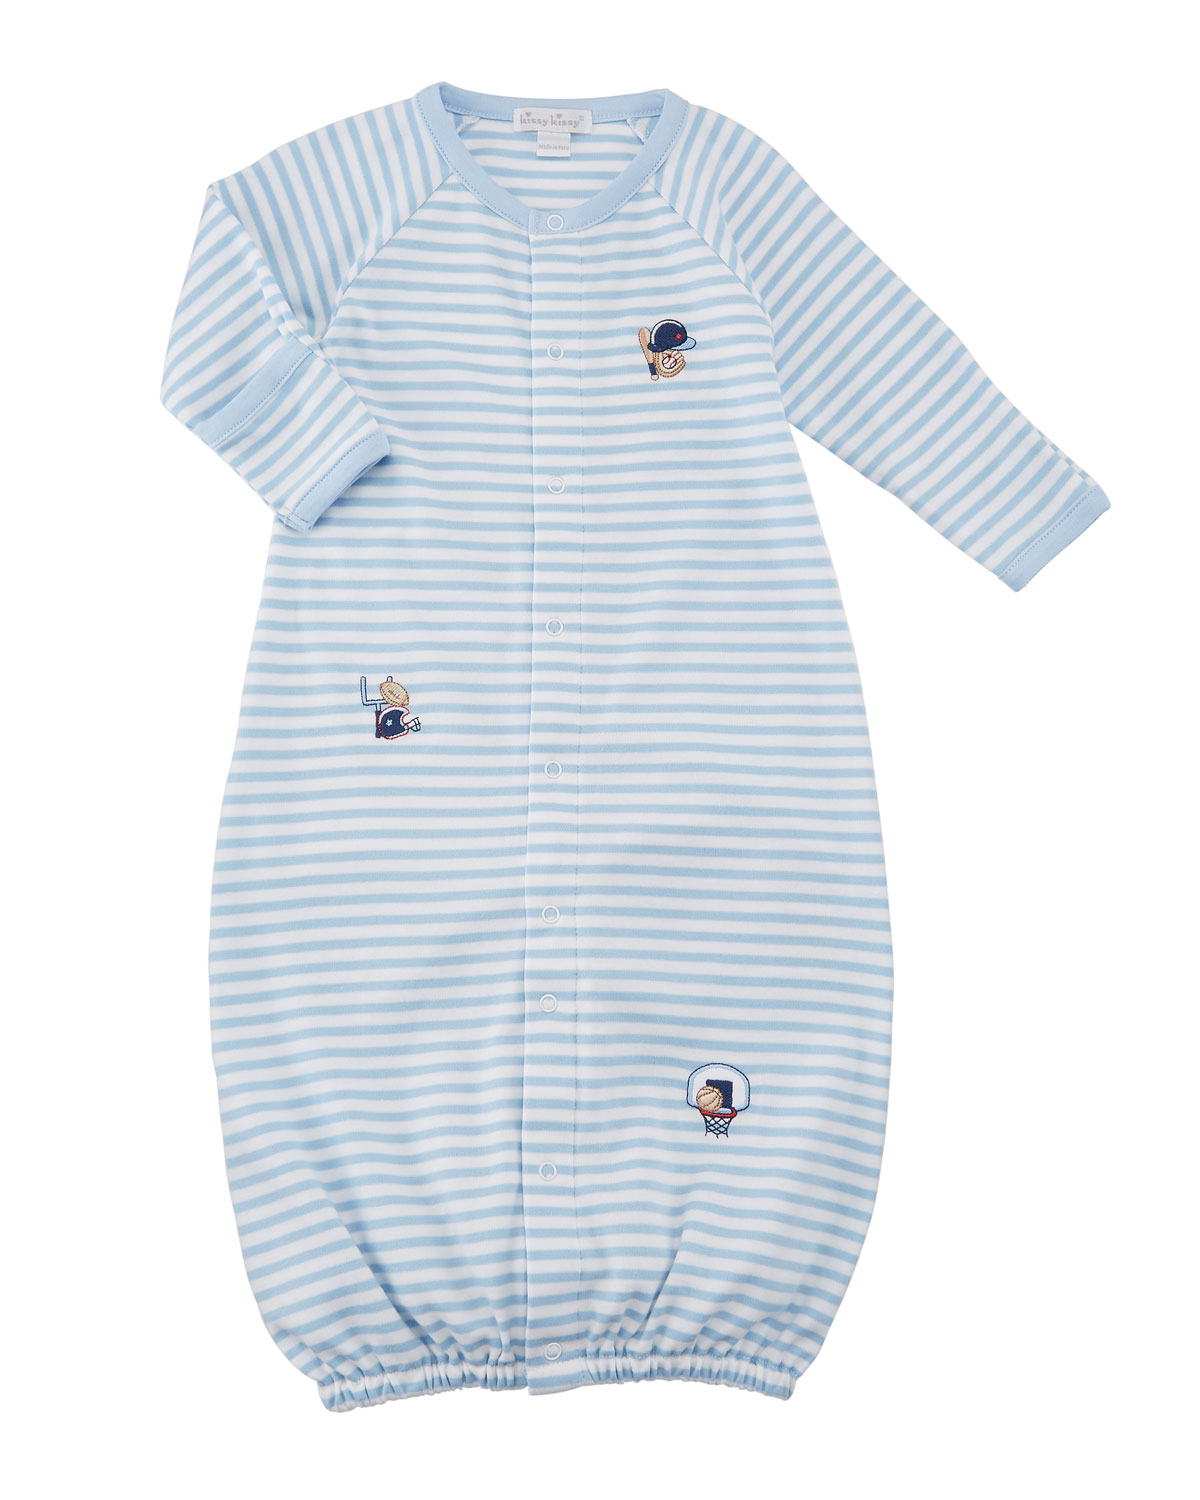 Fall Sports Striped Convertible Gown, Size Newborn-S